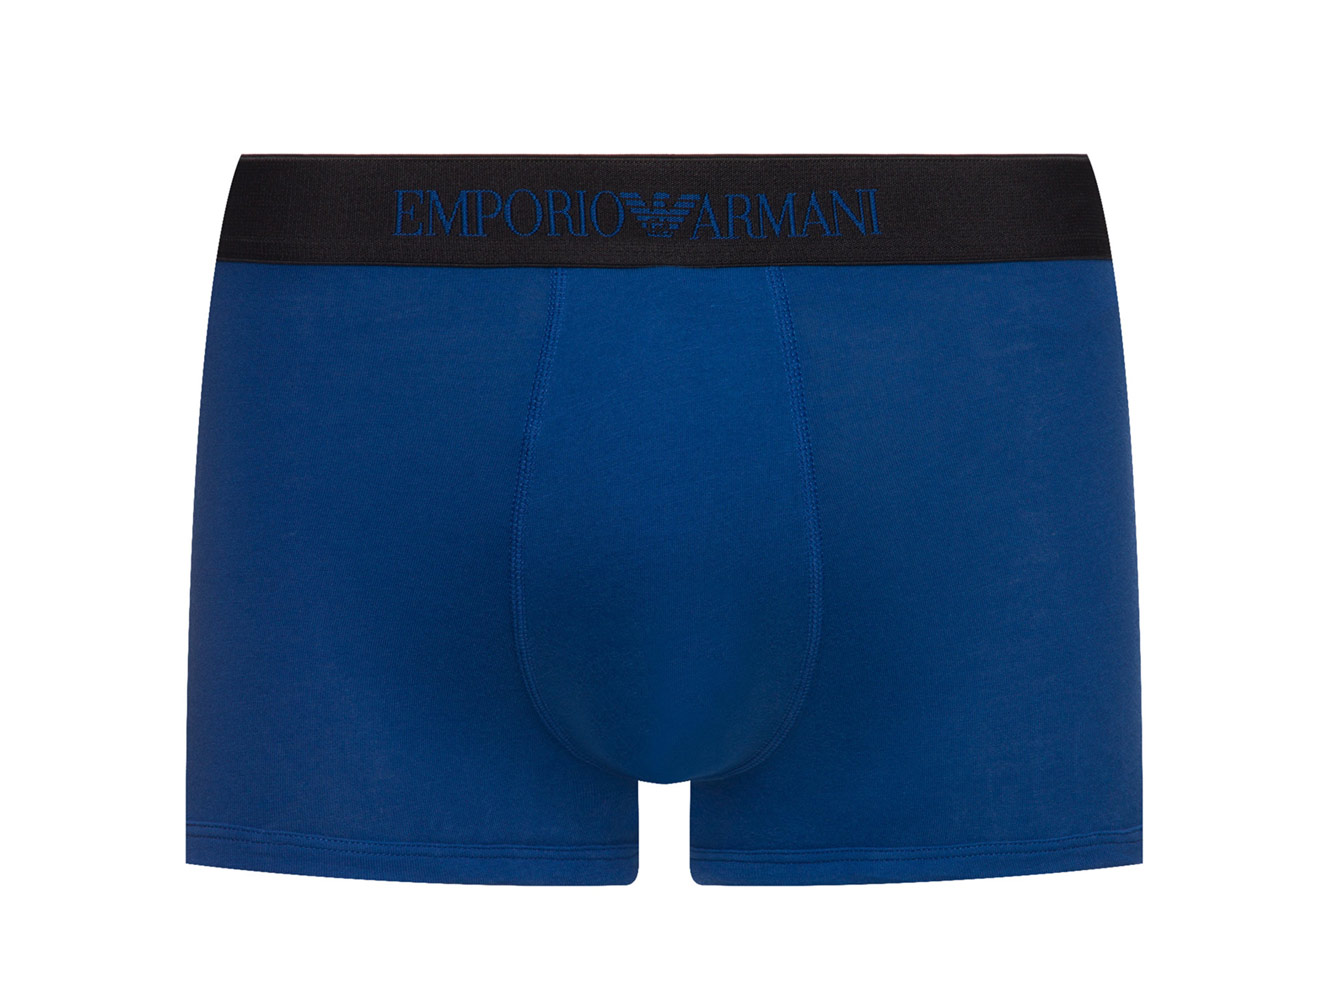 EMPORIO ARMANI boxerky Pure Cotton 3 pack - Blue5